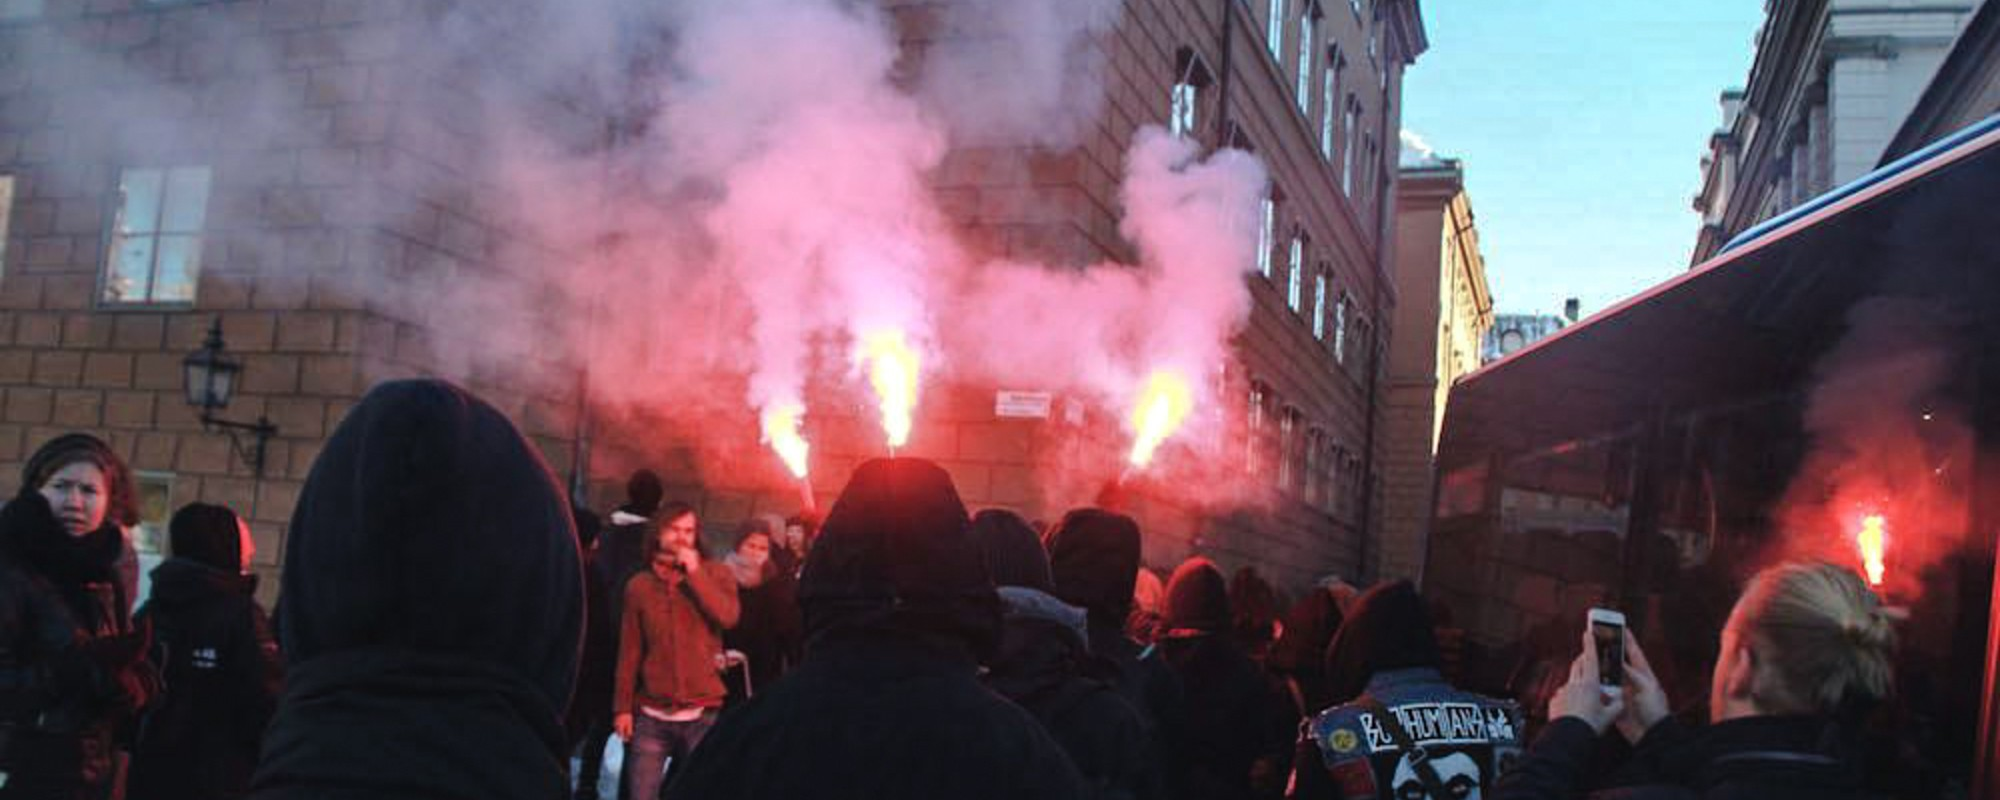 Thousands Protested Against Swedish Neo-Nazis in Central Stockholm This Weekend